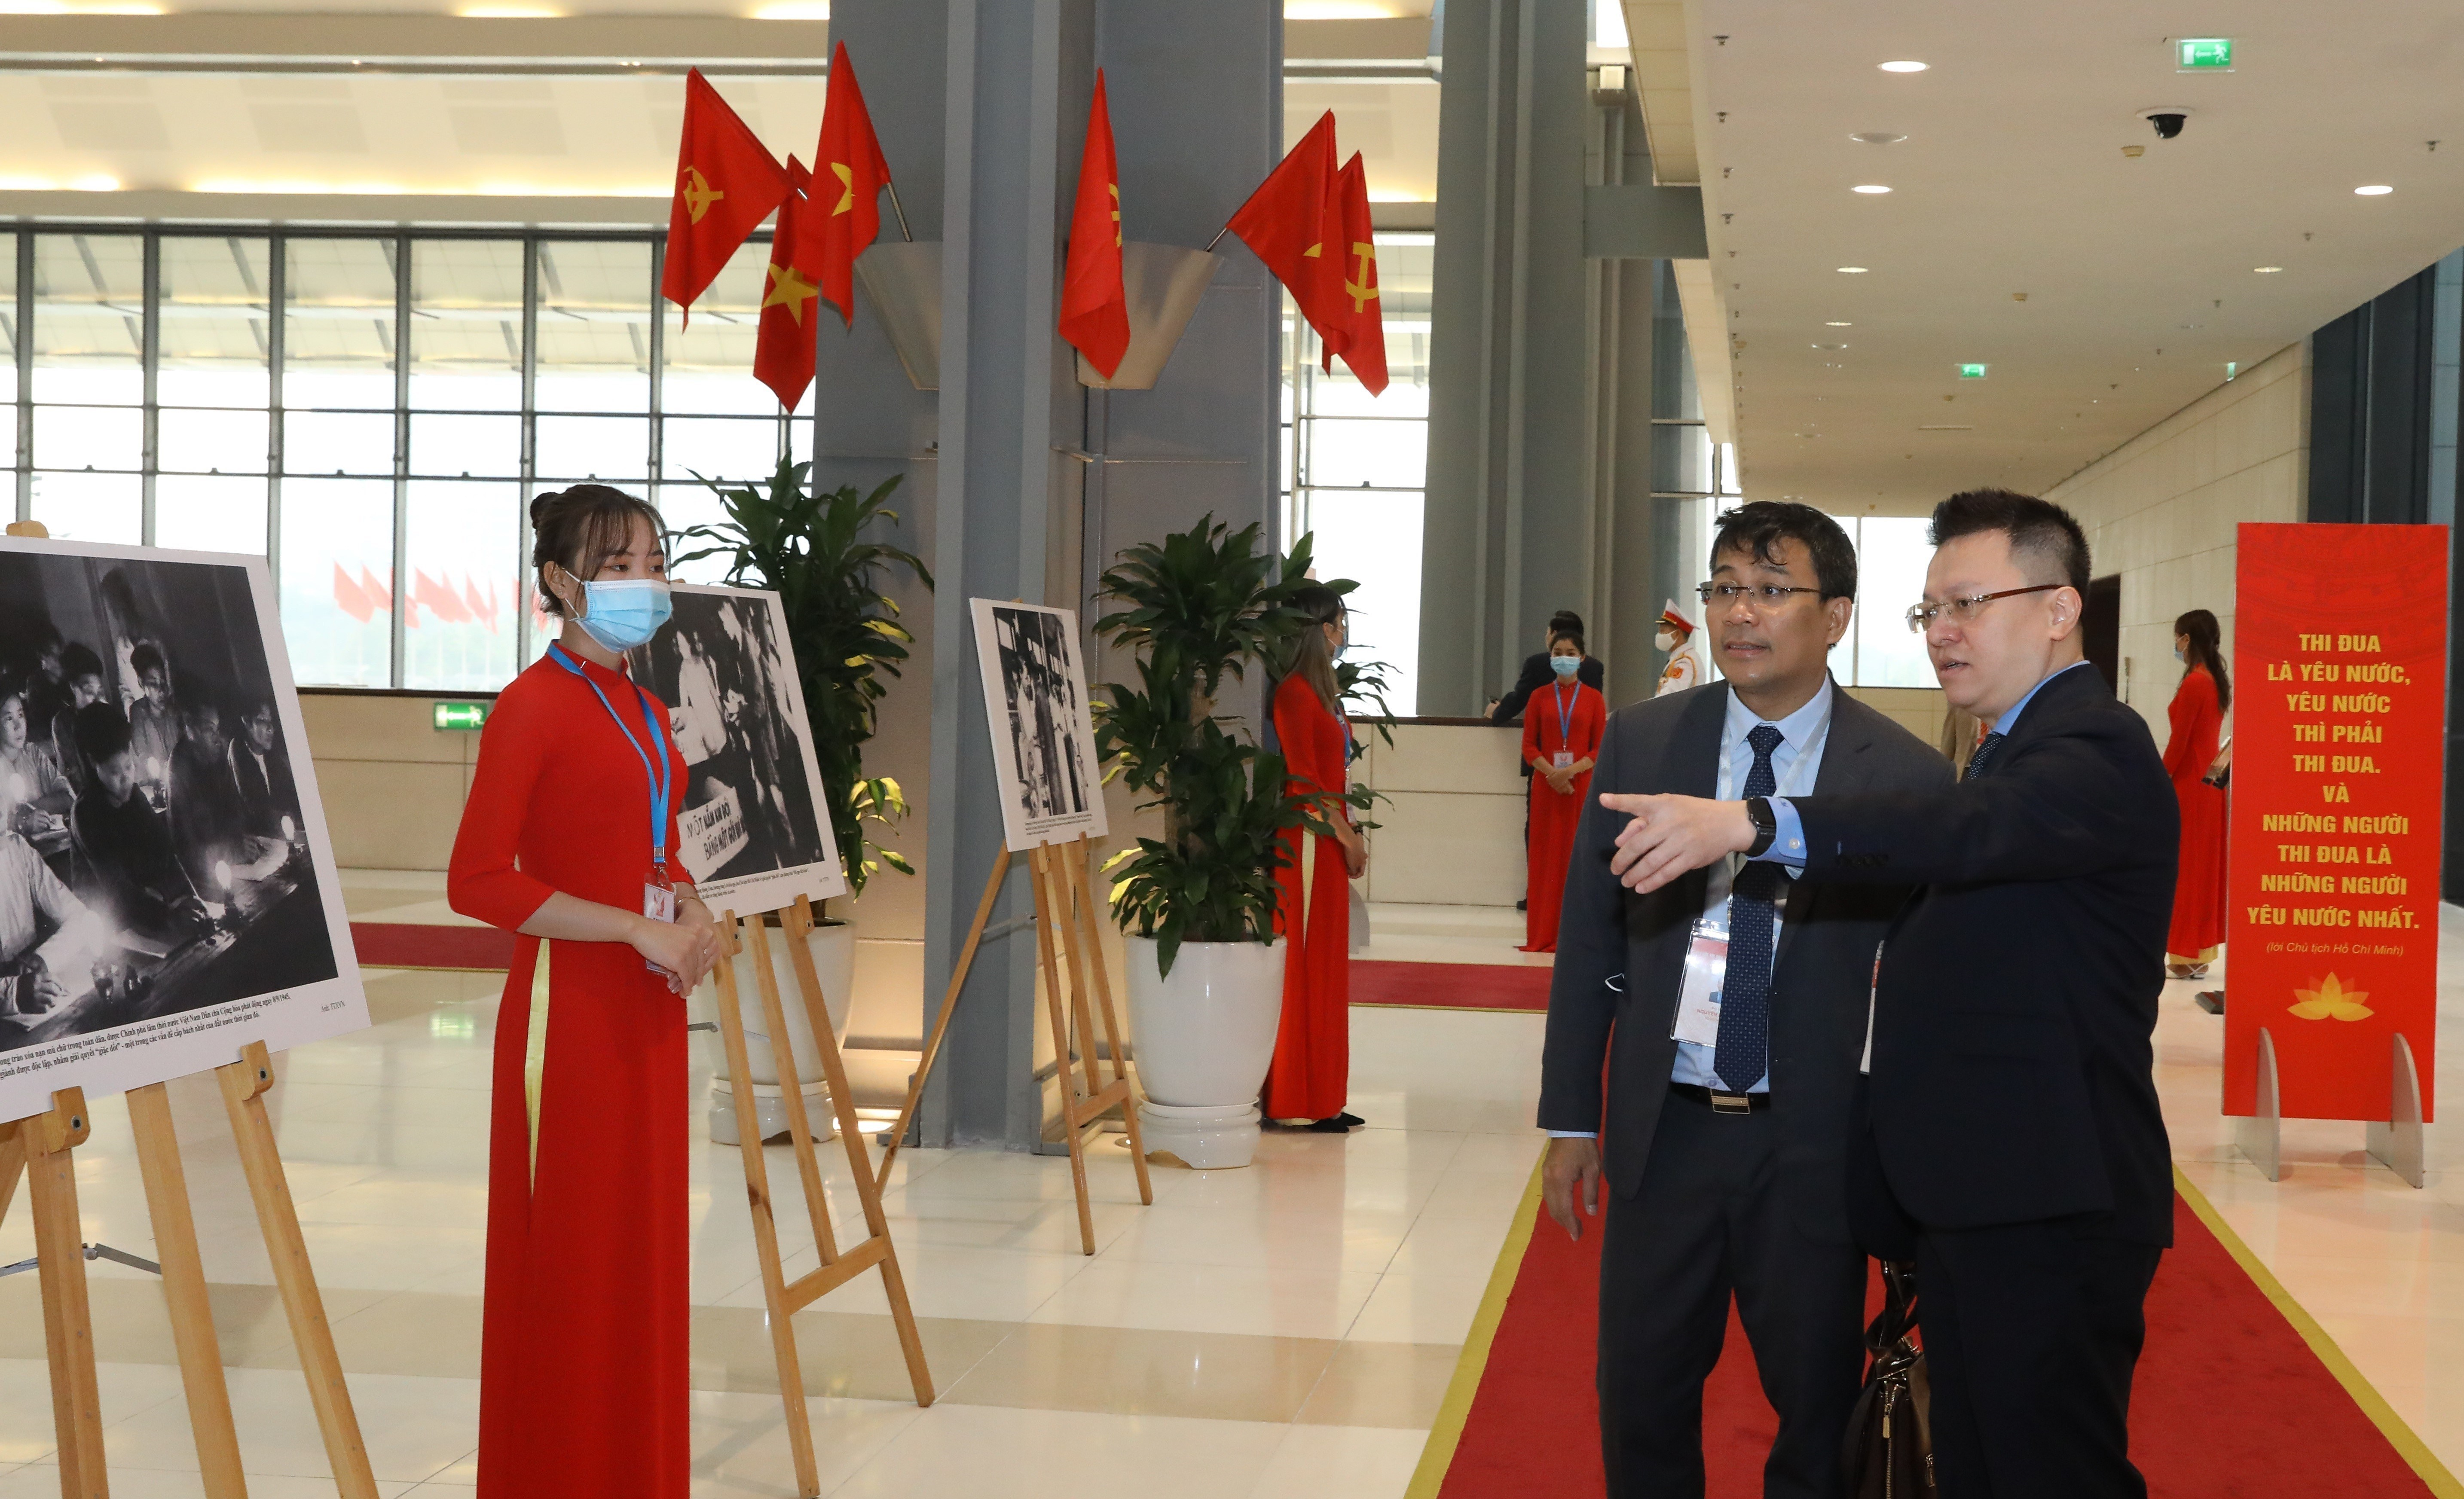 10th National Patriotic Emulation Congress opens in Hanoi hinh anh 12